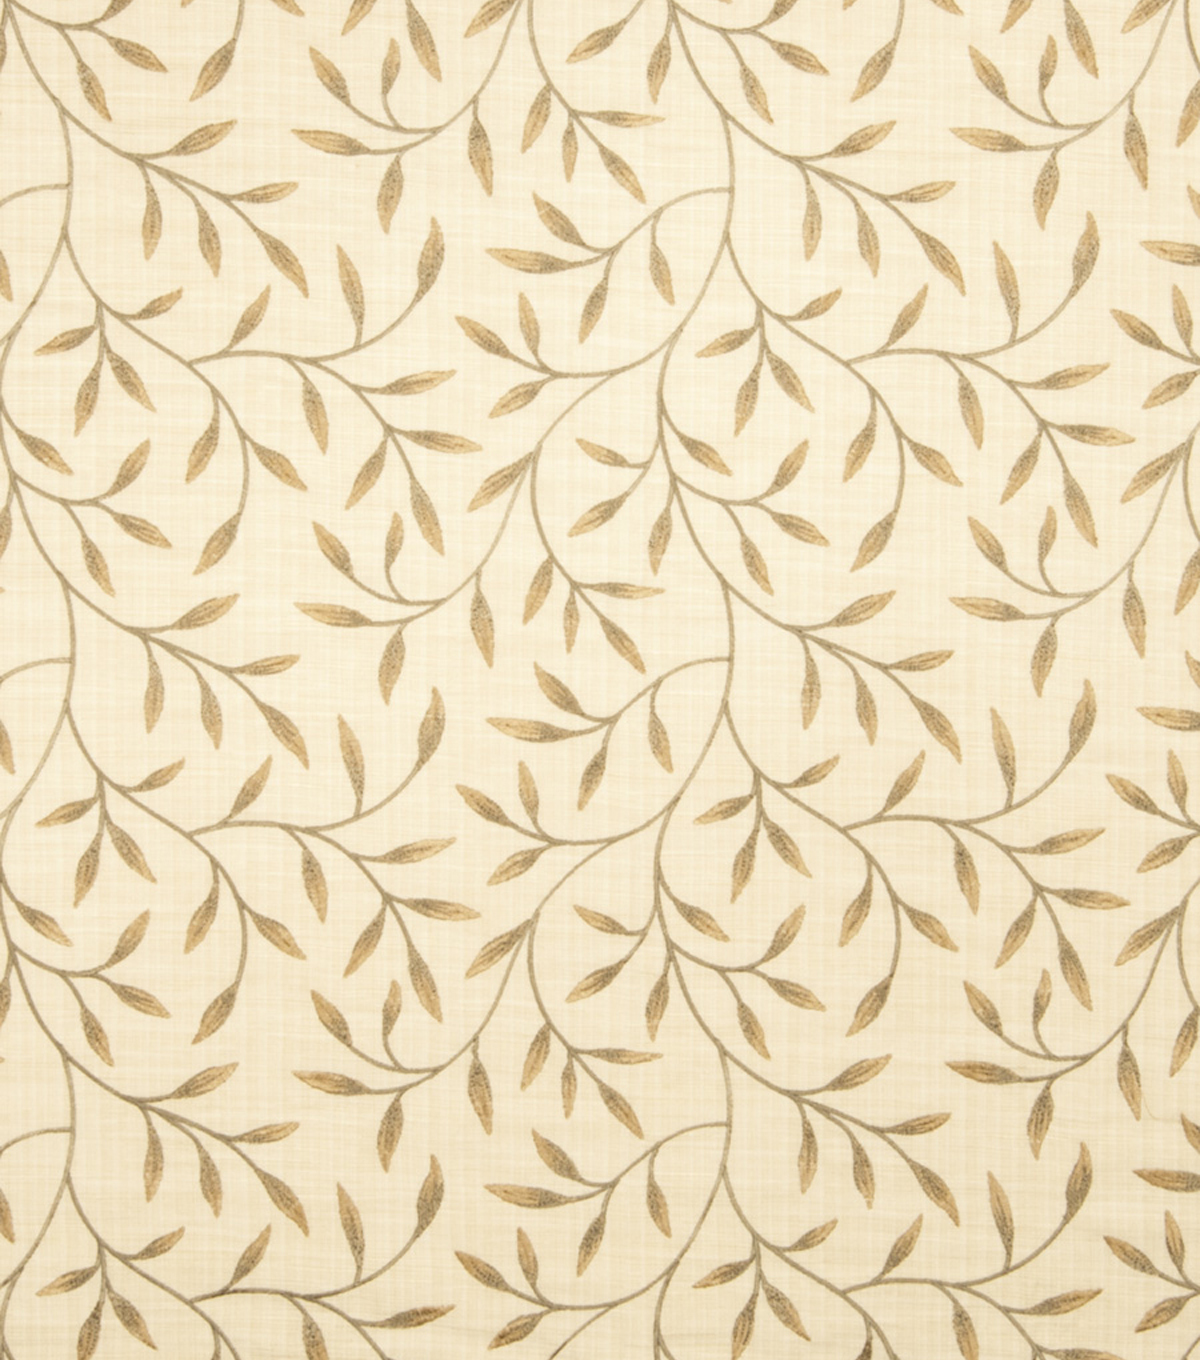 Home Decor 8\u0022x8\u0022 Fabric Swatch-SMC Designs Abigail / Honeysuckle